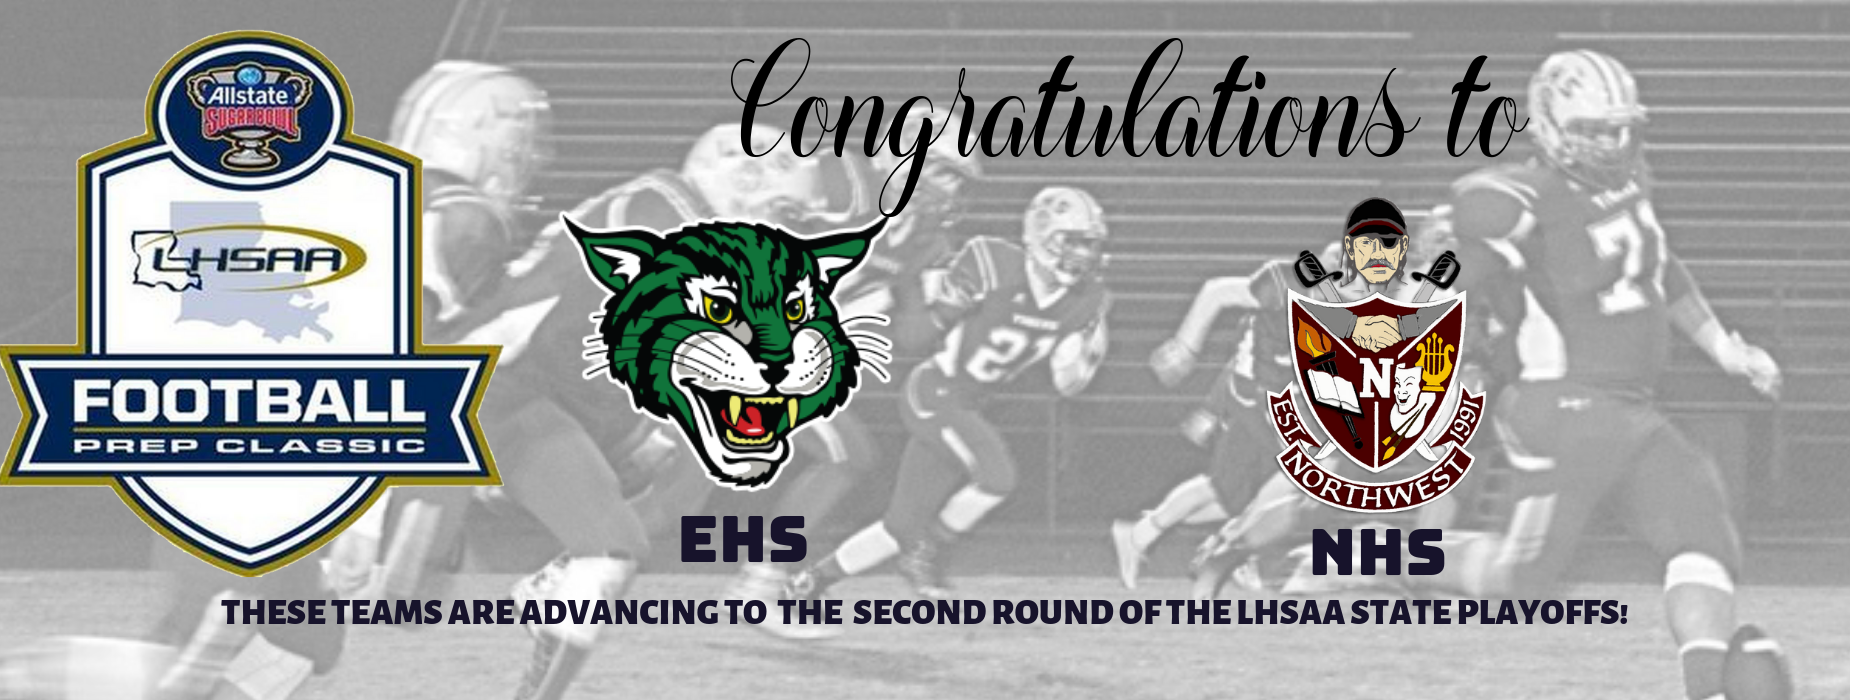 ehs and nhs are advancing to the 2nd round of the state football playoffs